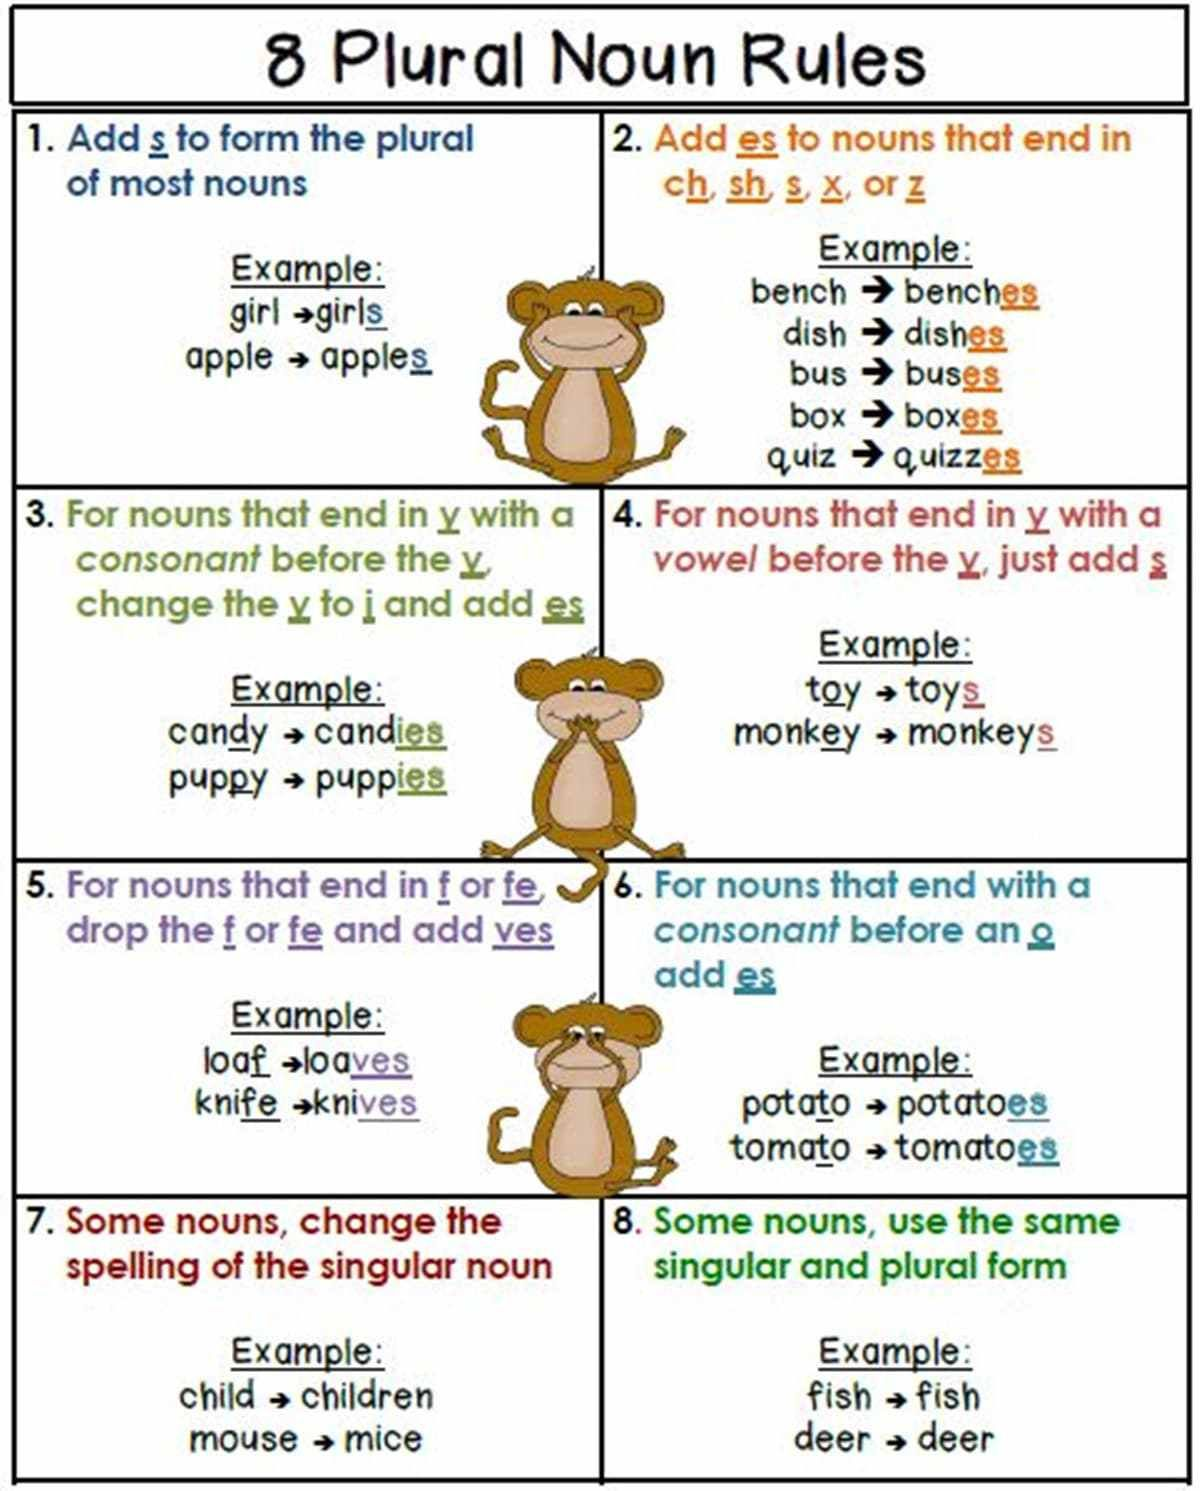 Workbooks plural rules worksheets : Singular & Plural Nouns: Definitions, Rules & Examples | English ...